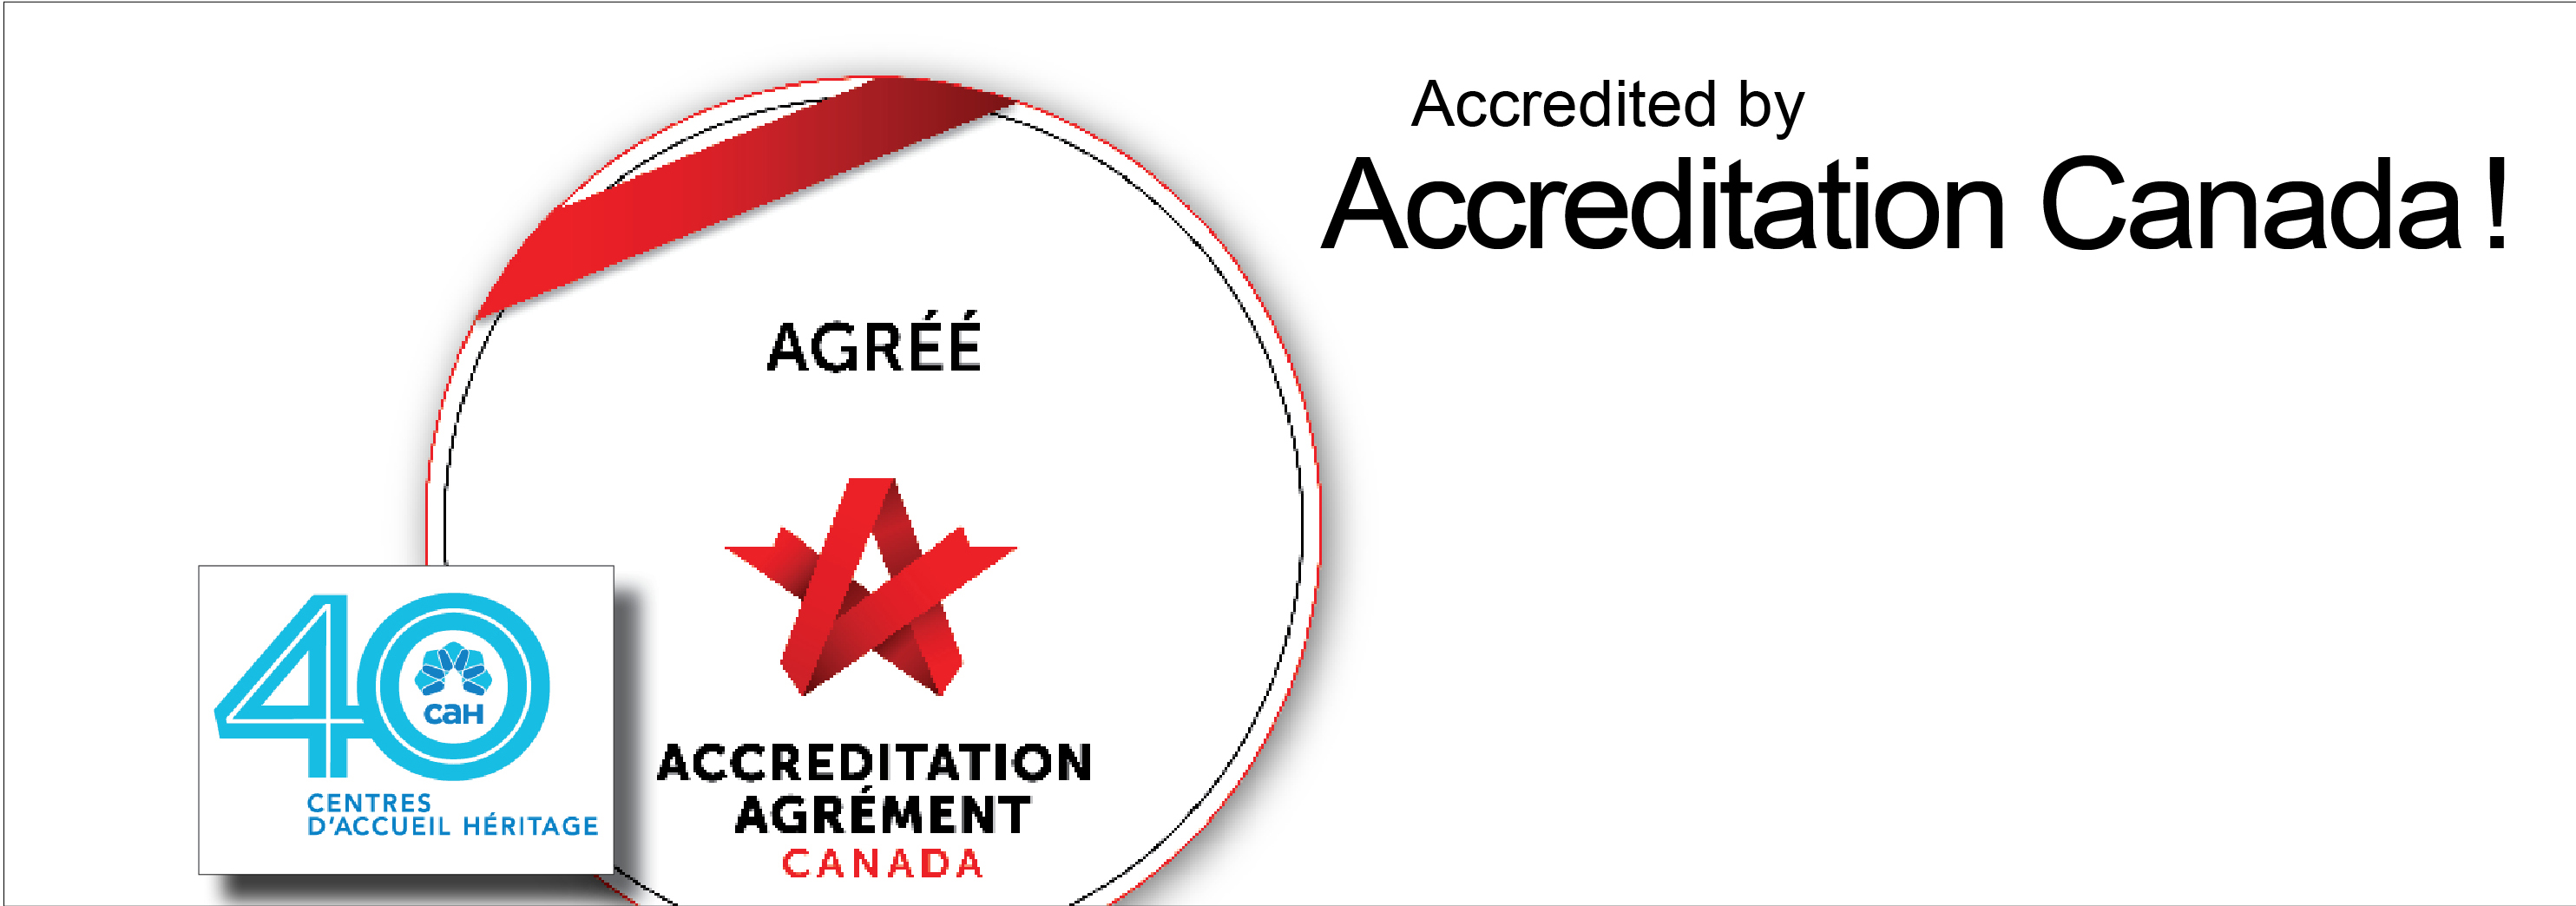 CAH Accredited by Accreditation Canada